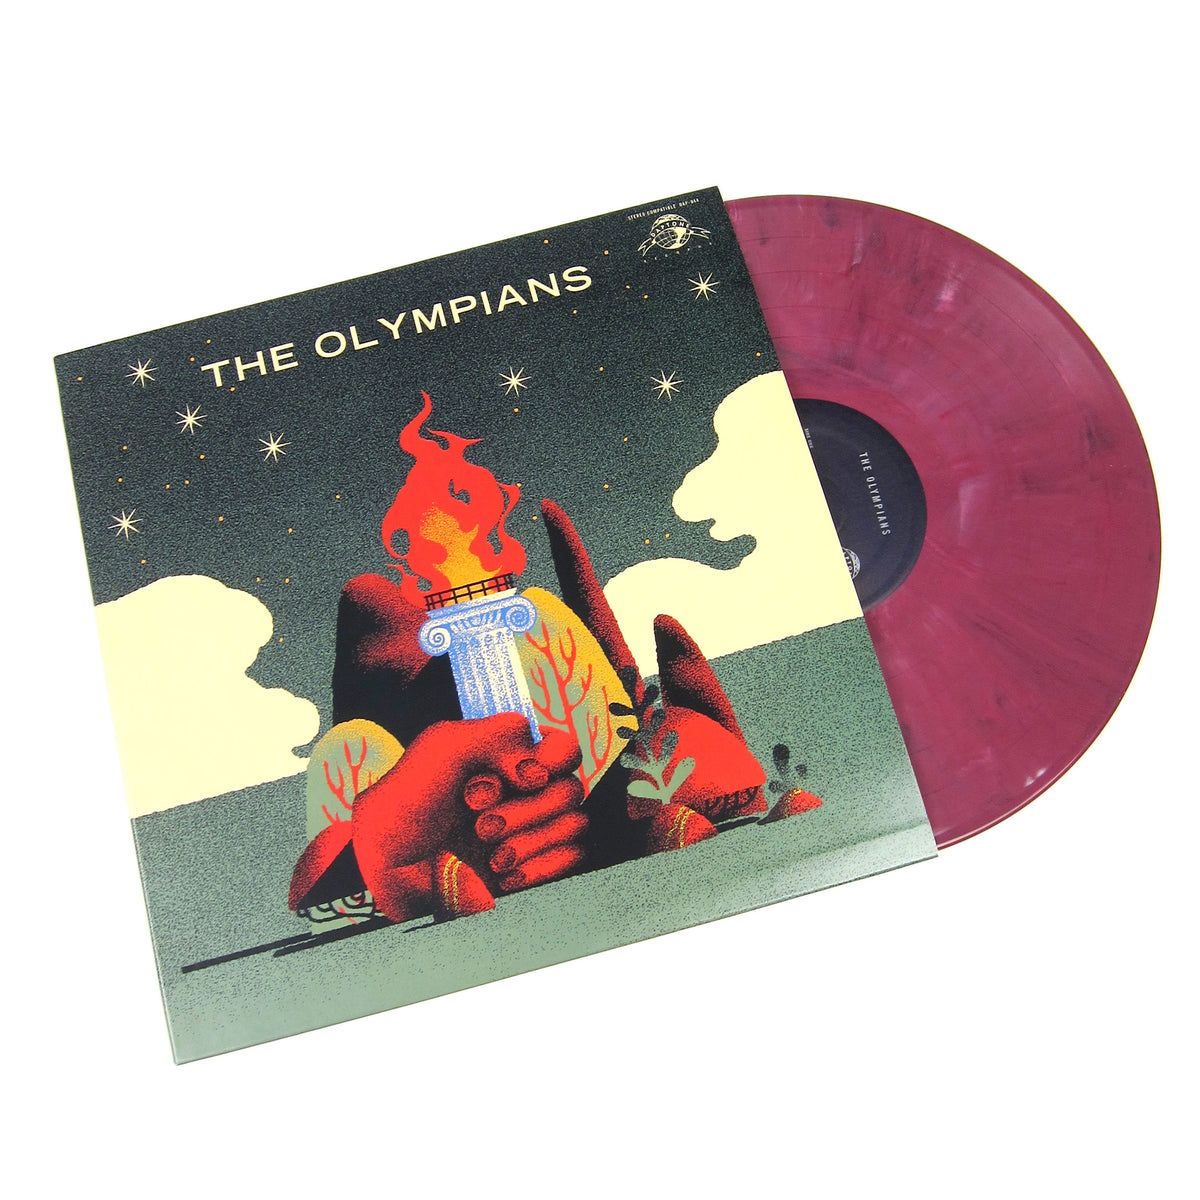 The Olympians: The Olympians (Indie Exclusive Colored Vinyl) Vinyl LP